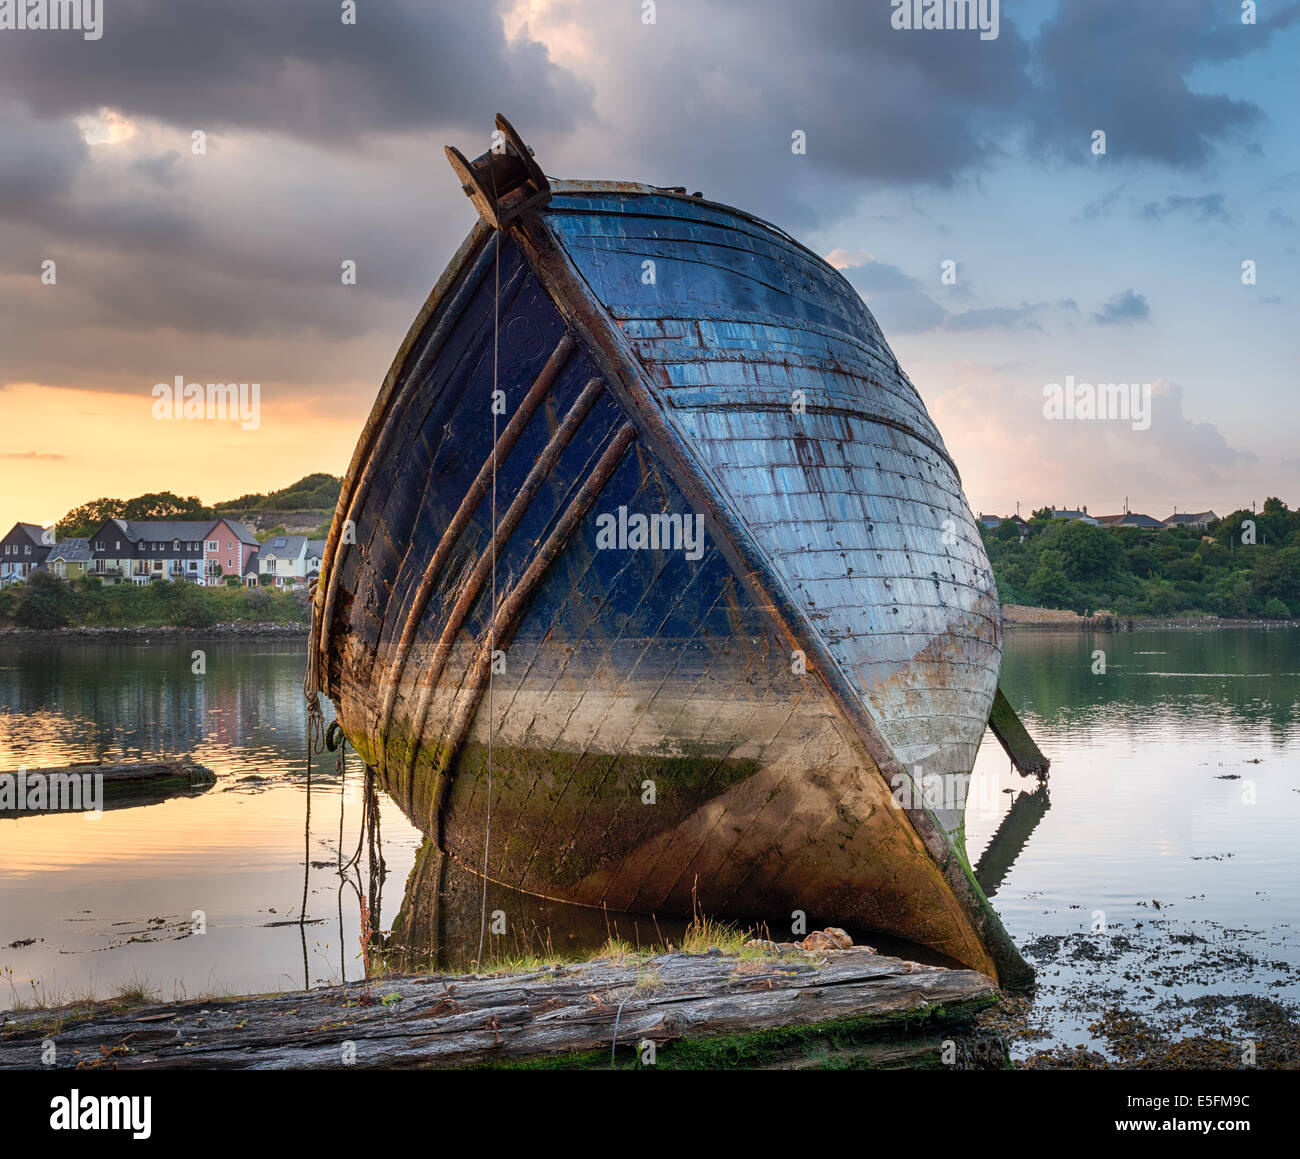 Old abandoned wooden fishing trawler resting on the shore - Stock Image